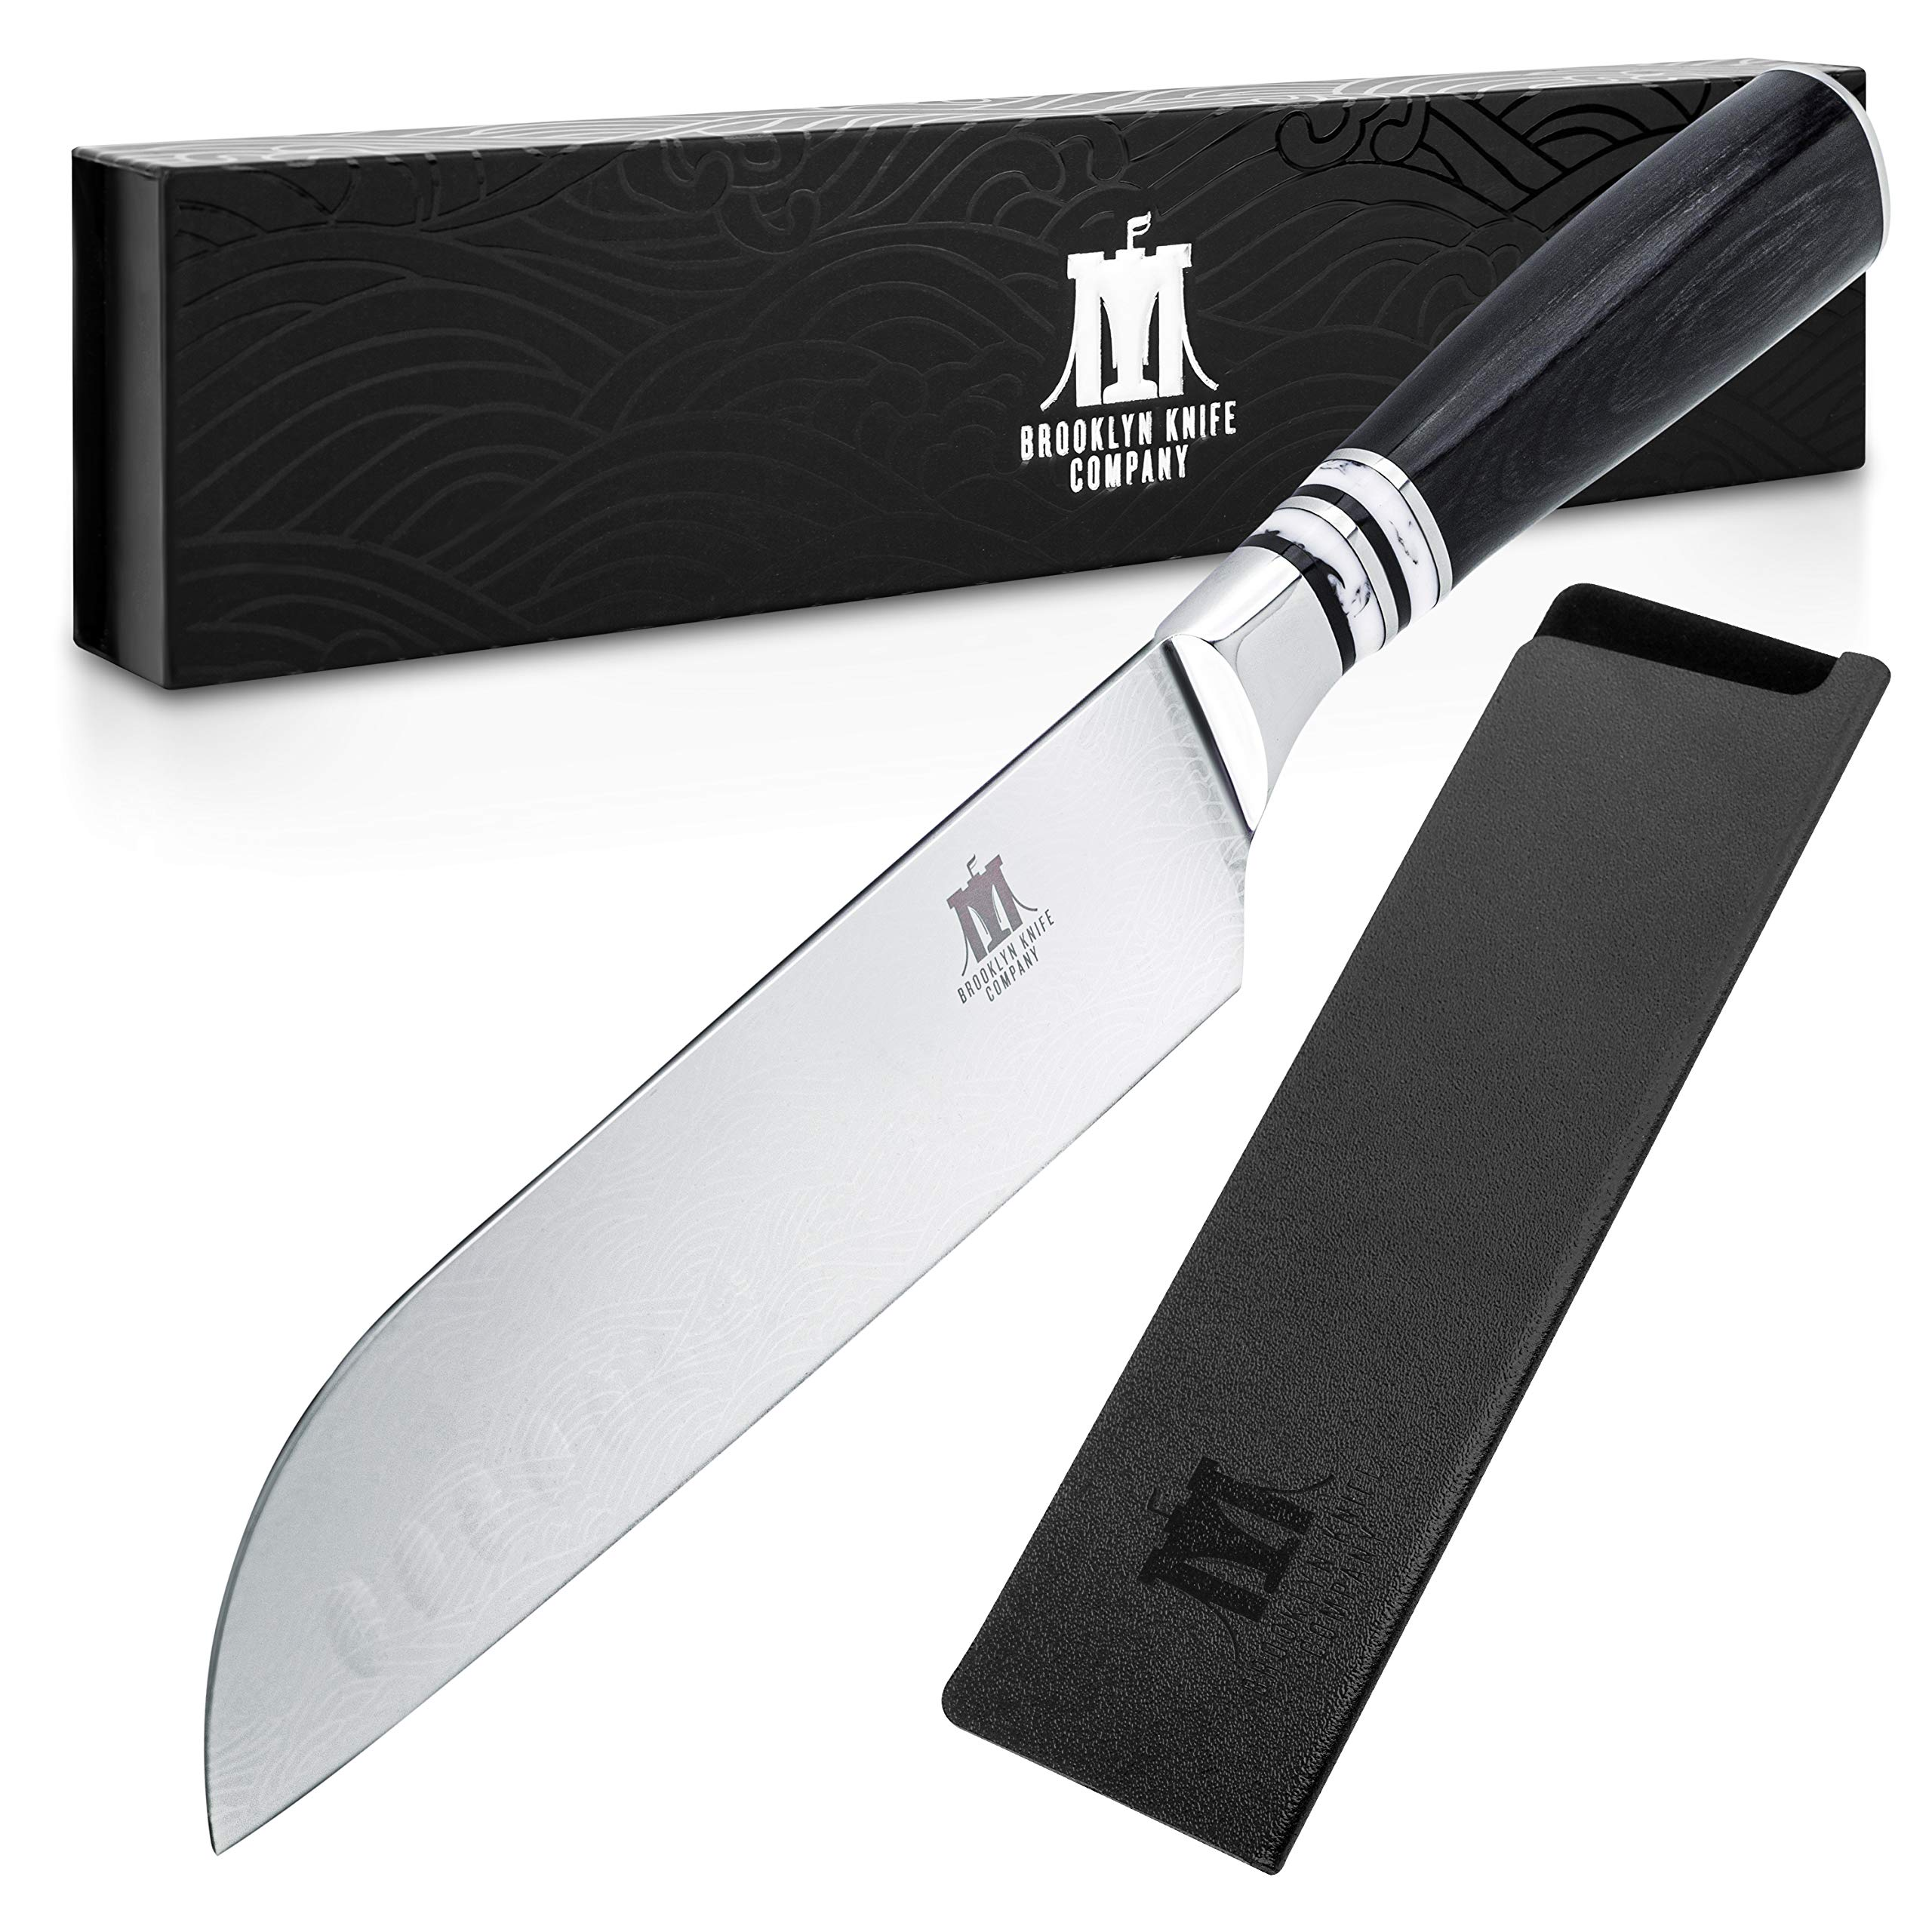 Brooklyn Knife Co. Santoku Knife - Japanese Seigaiha Series - Etched High Carbon Steel 7-Inch